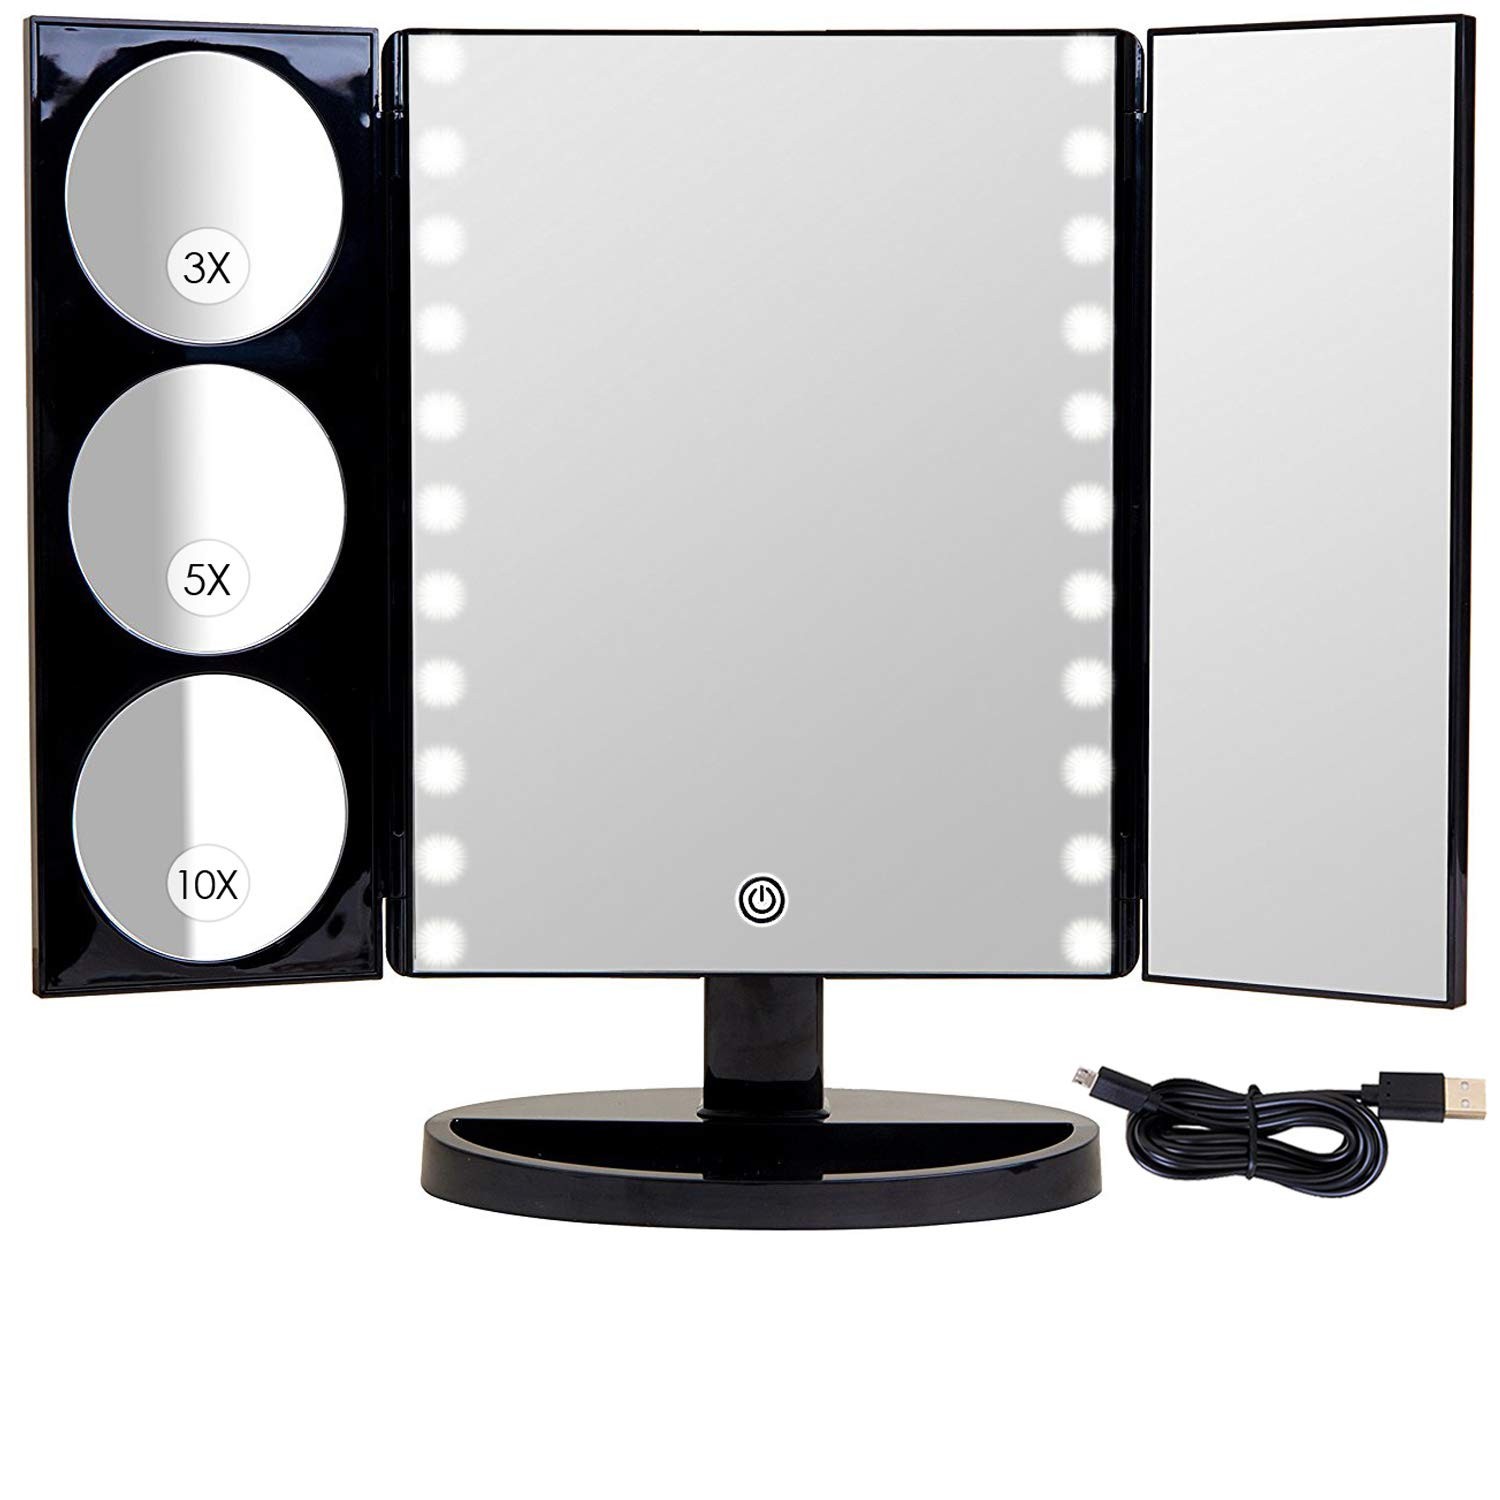 Espejo De Maquillaje Con Luces Led, Mirrorvana X-large